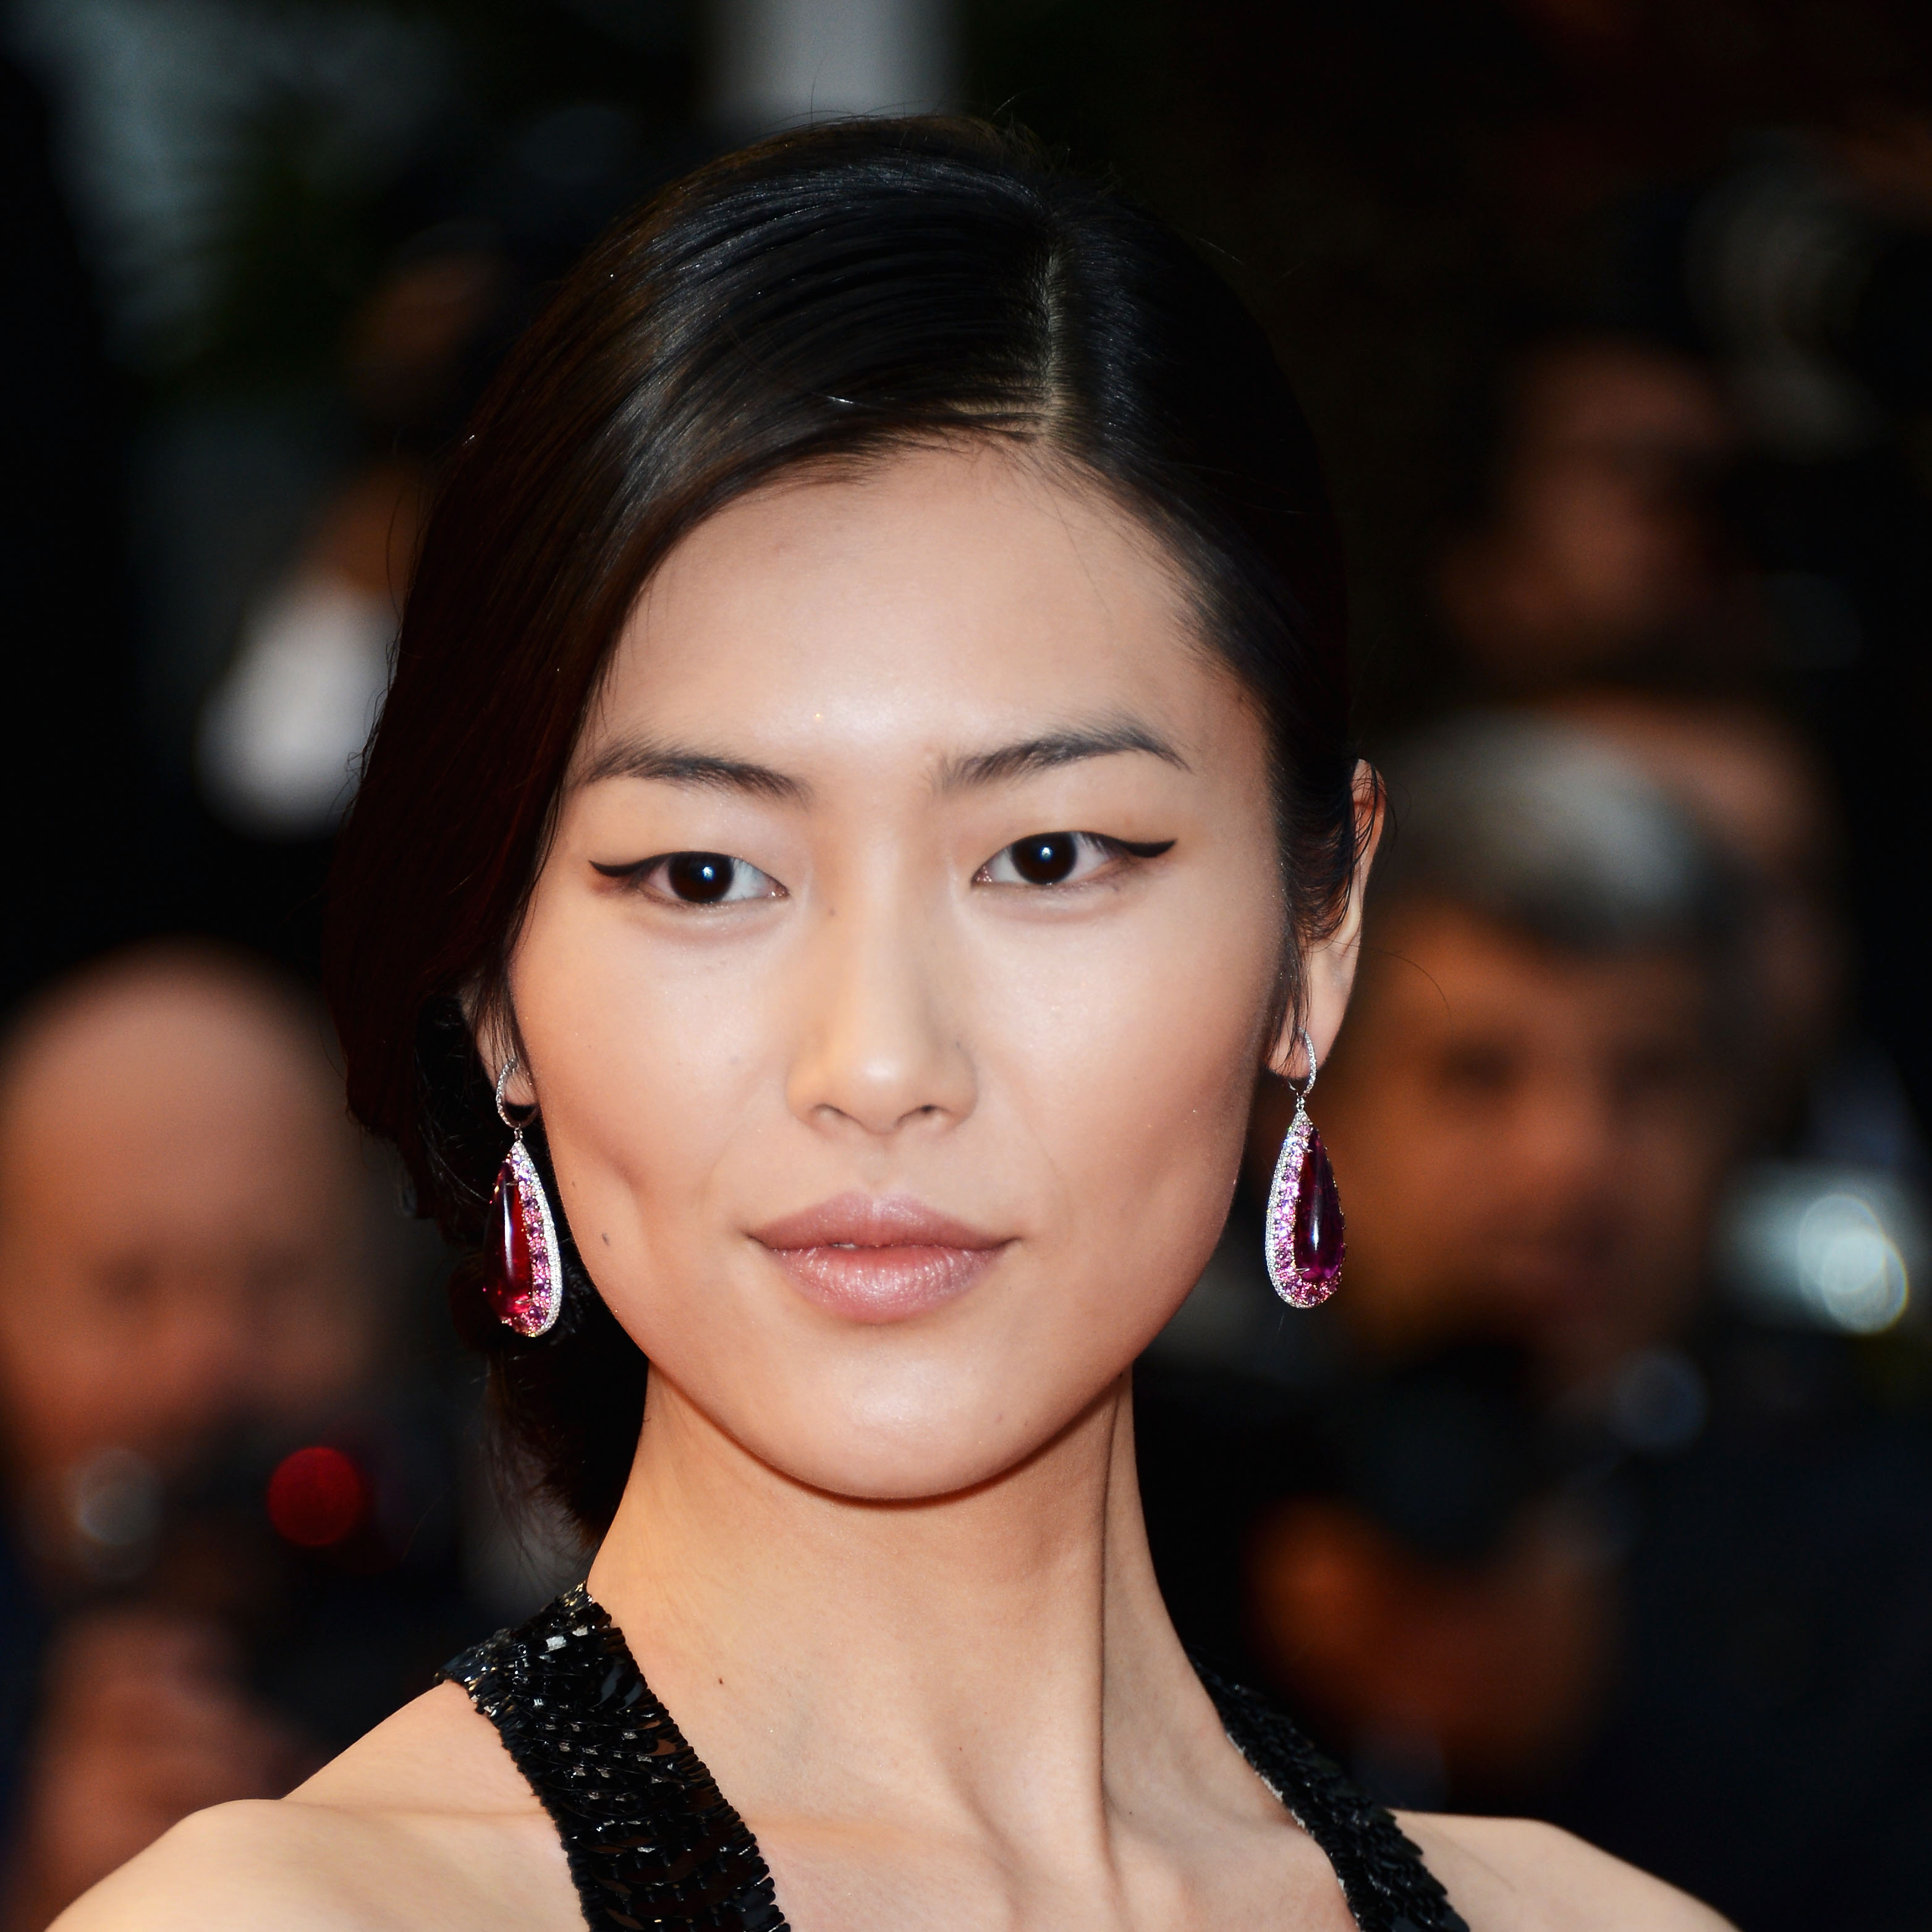 The 30-year old daughter of father (?) and mother(?), 178 cm tall Liu Wen in 2018 photo